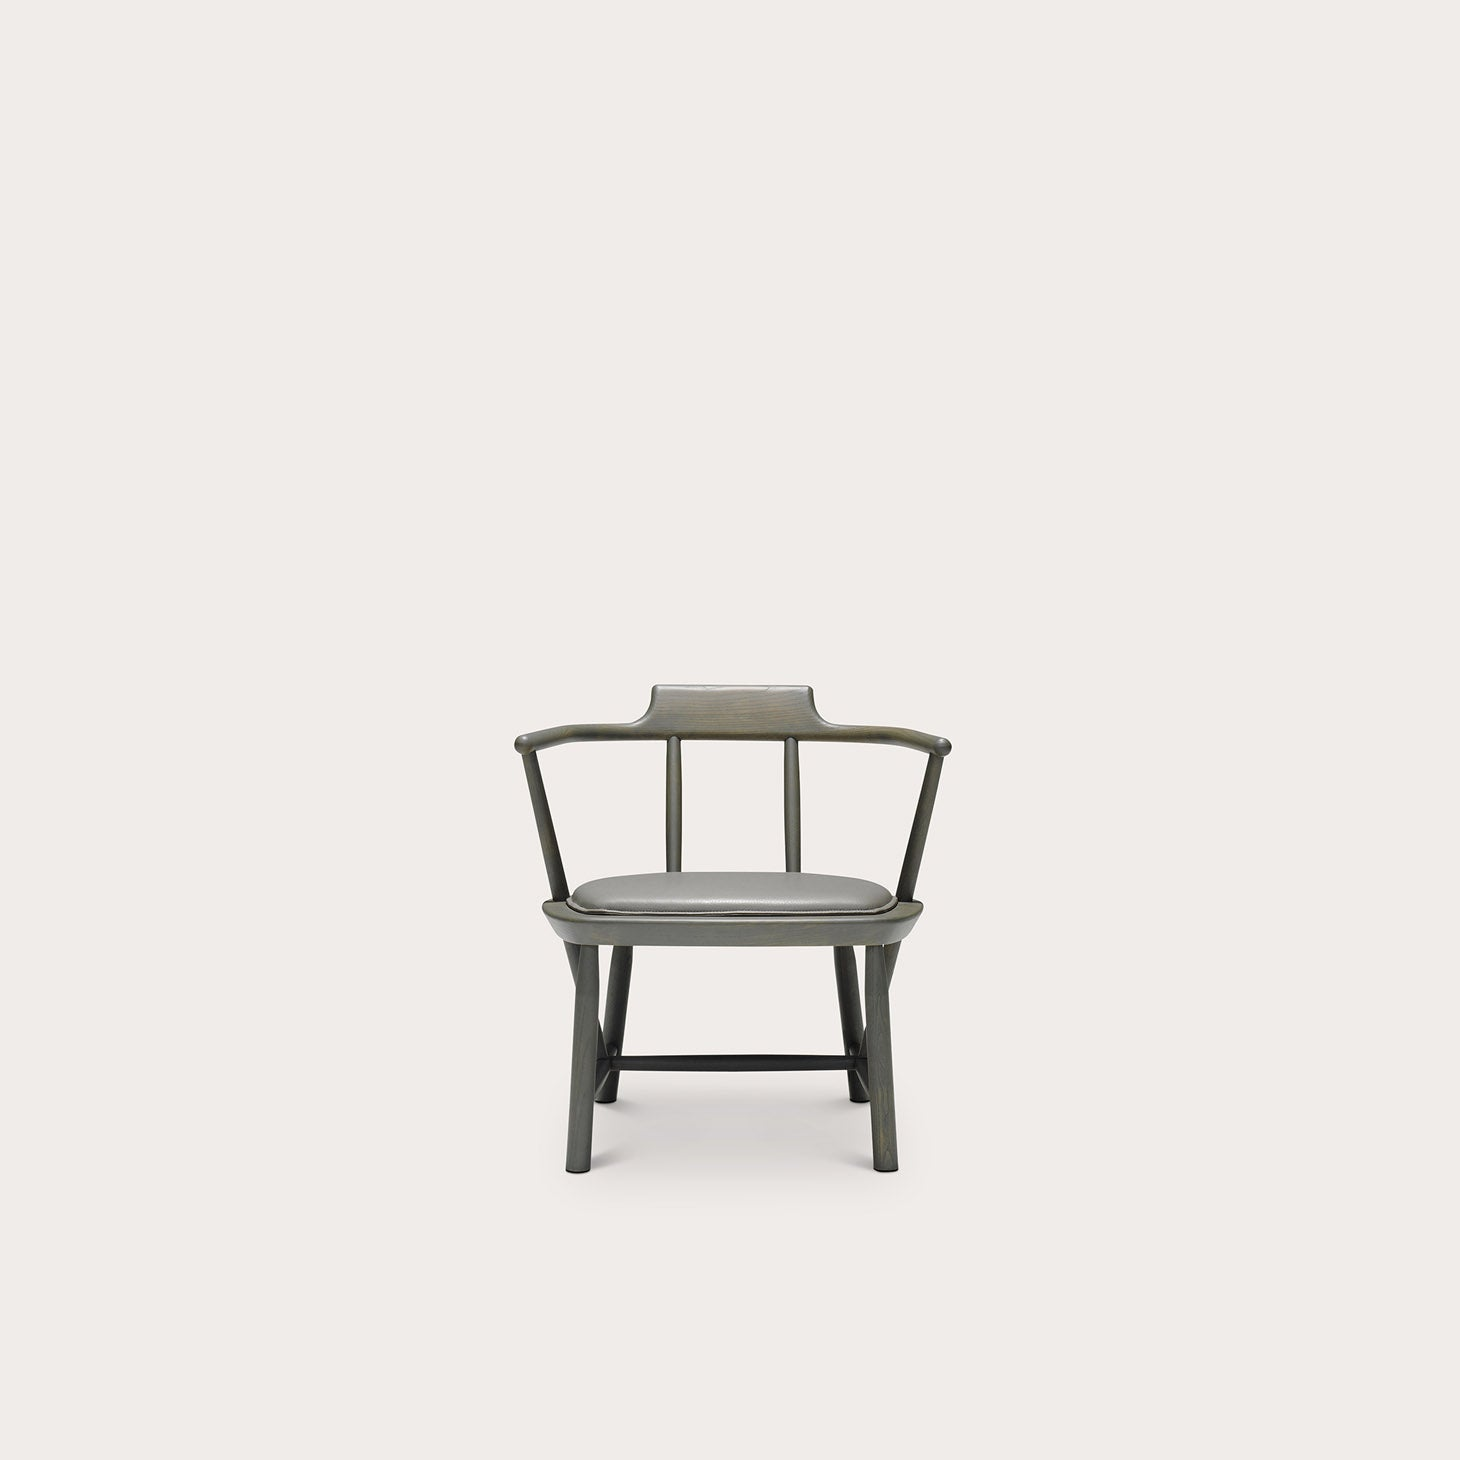 Oiseau Seating Yabu Pushelberg Designer Furniture Sku: 247-240-10330